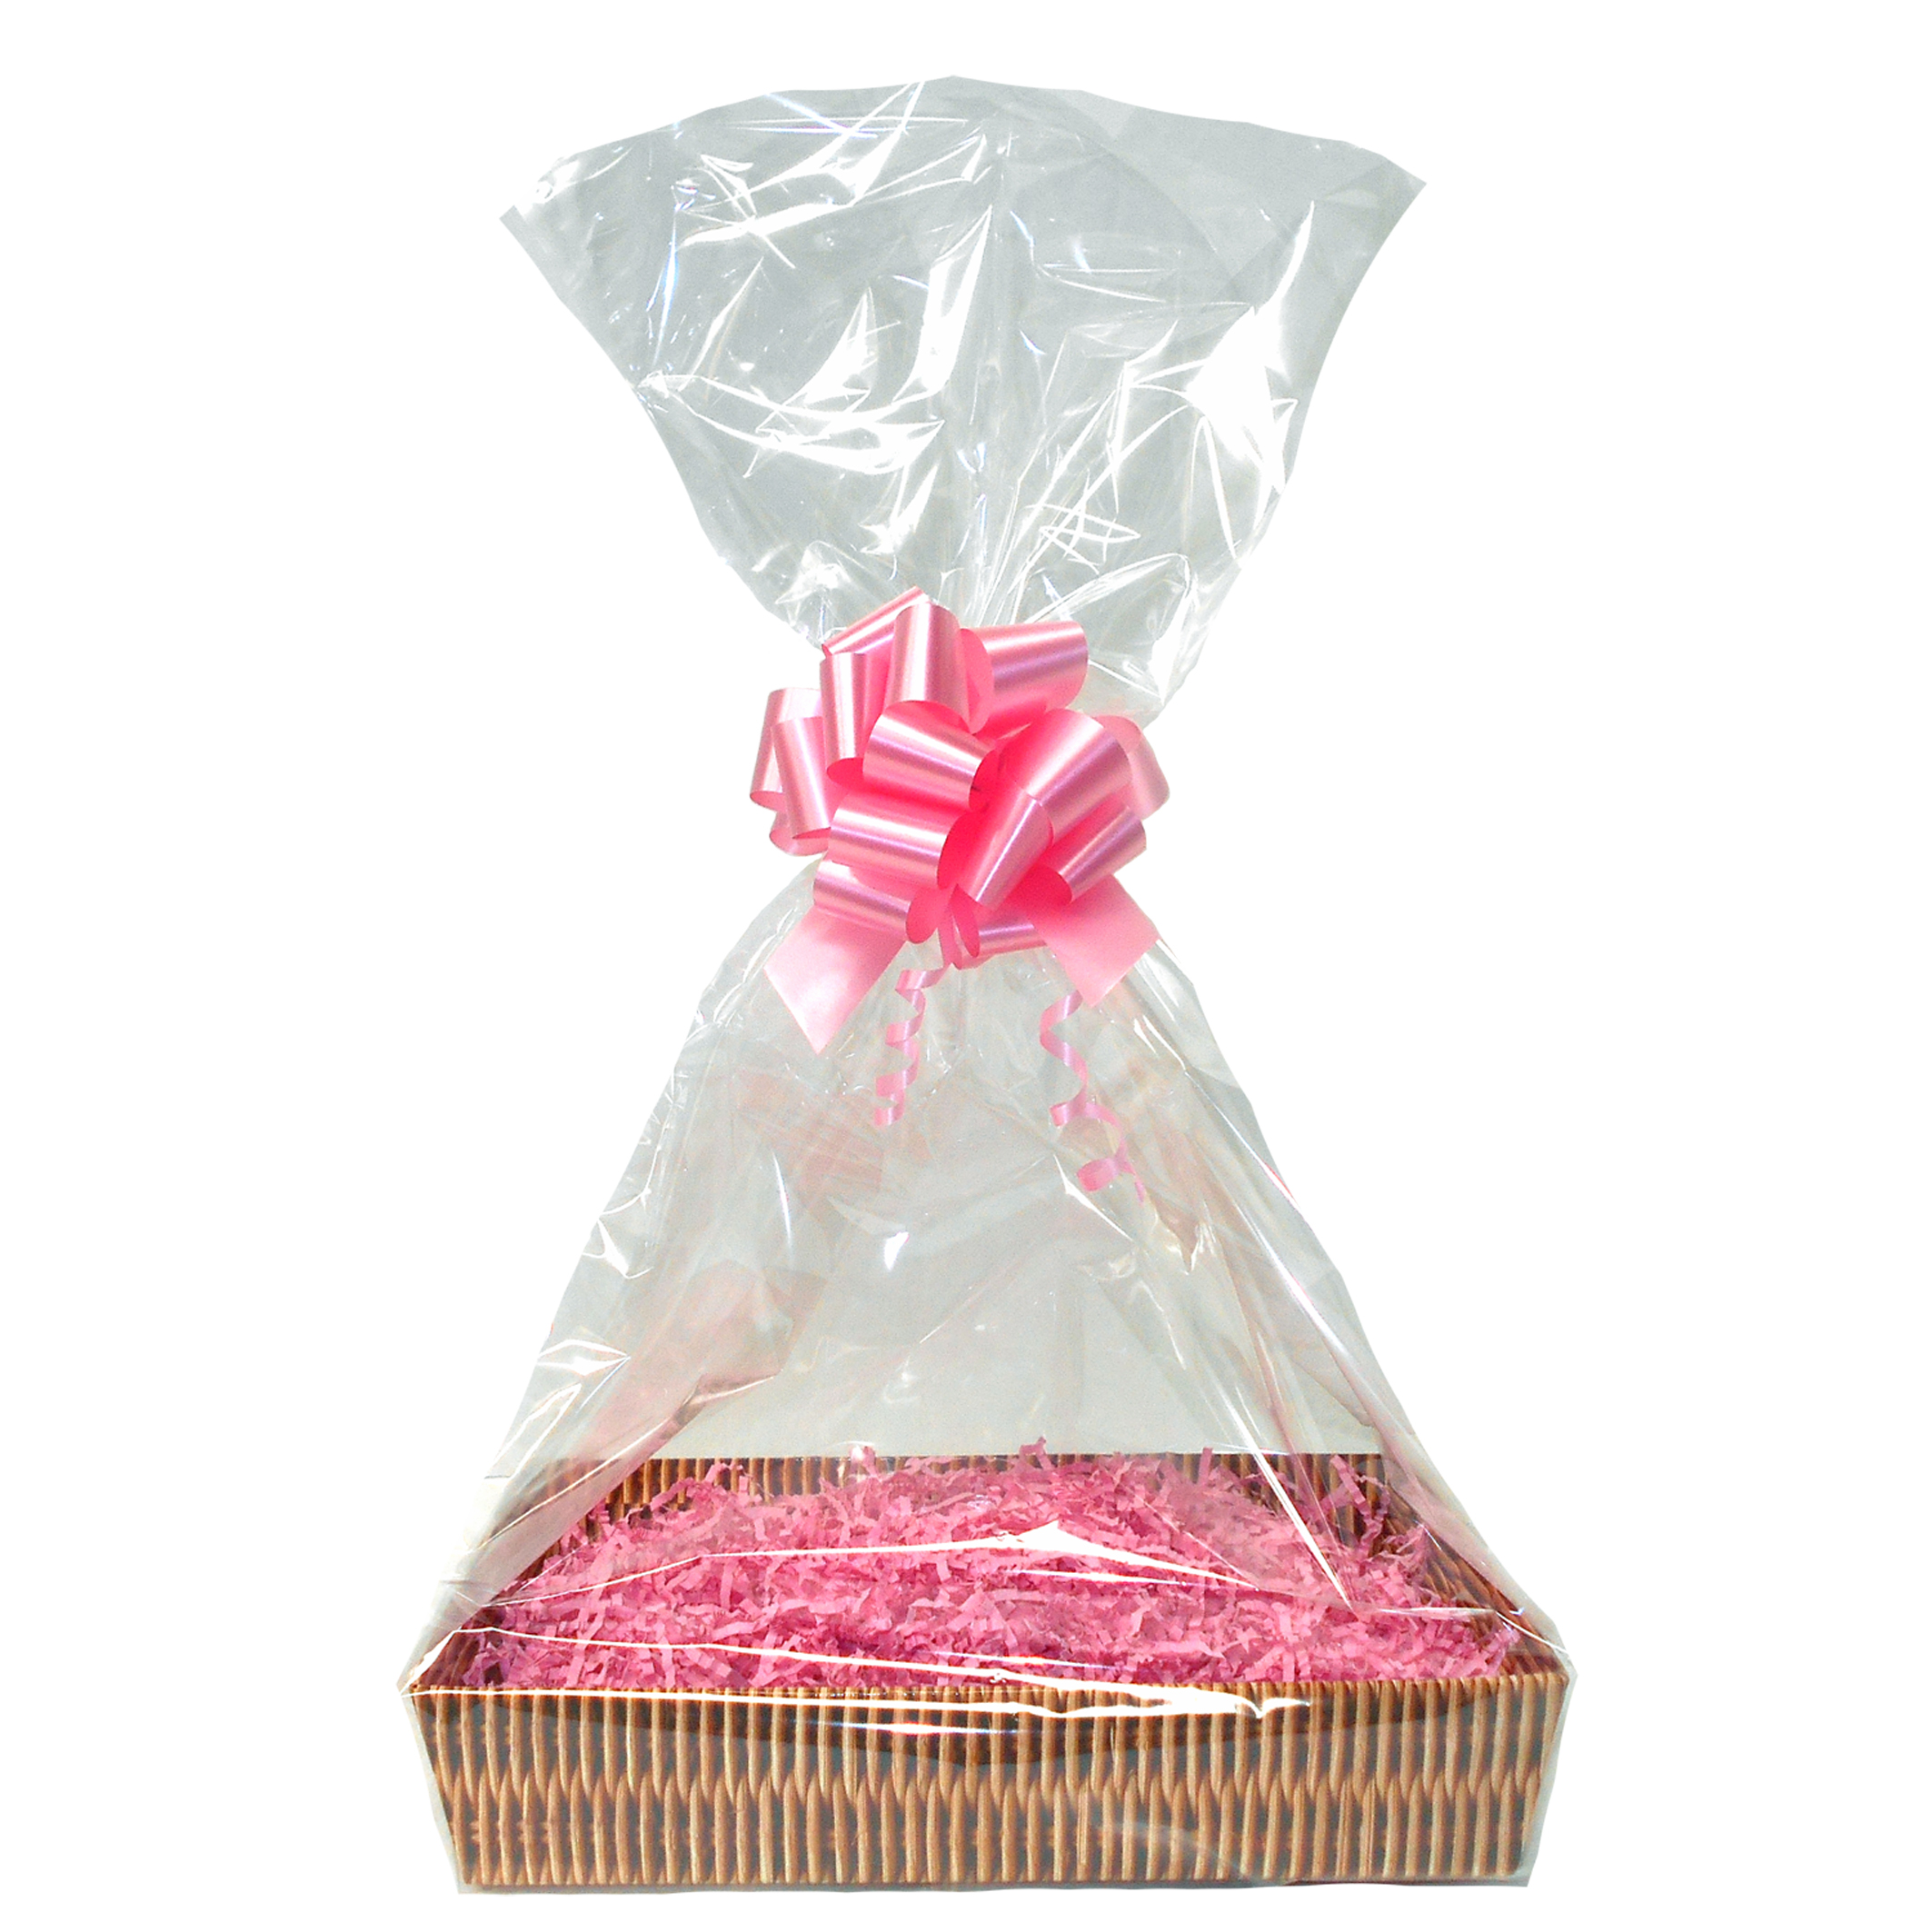 Gift Basket Accessory Kit - 36x25 - PINK SIZE C